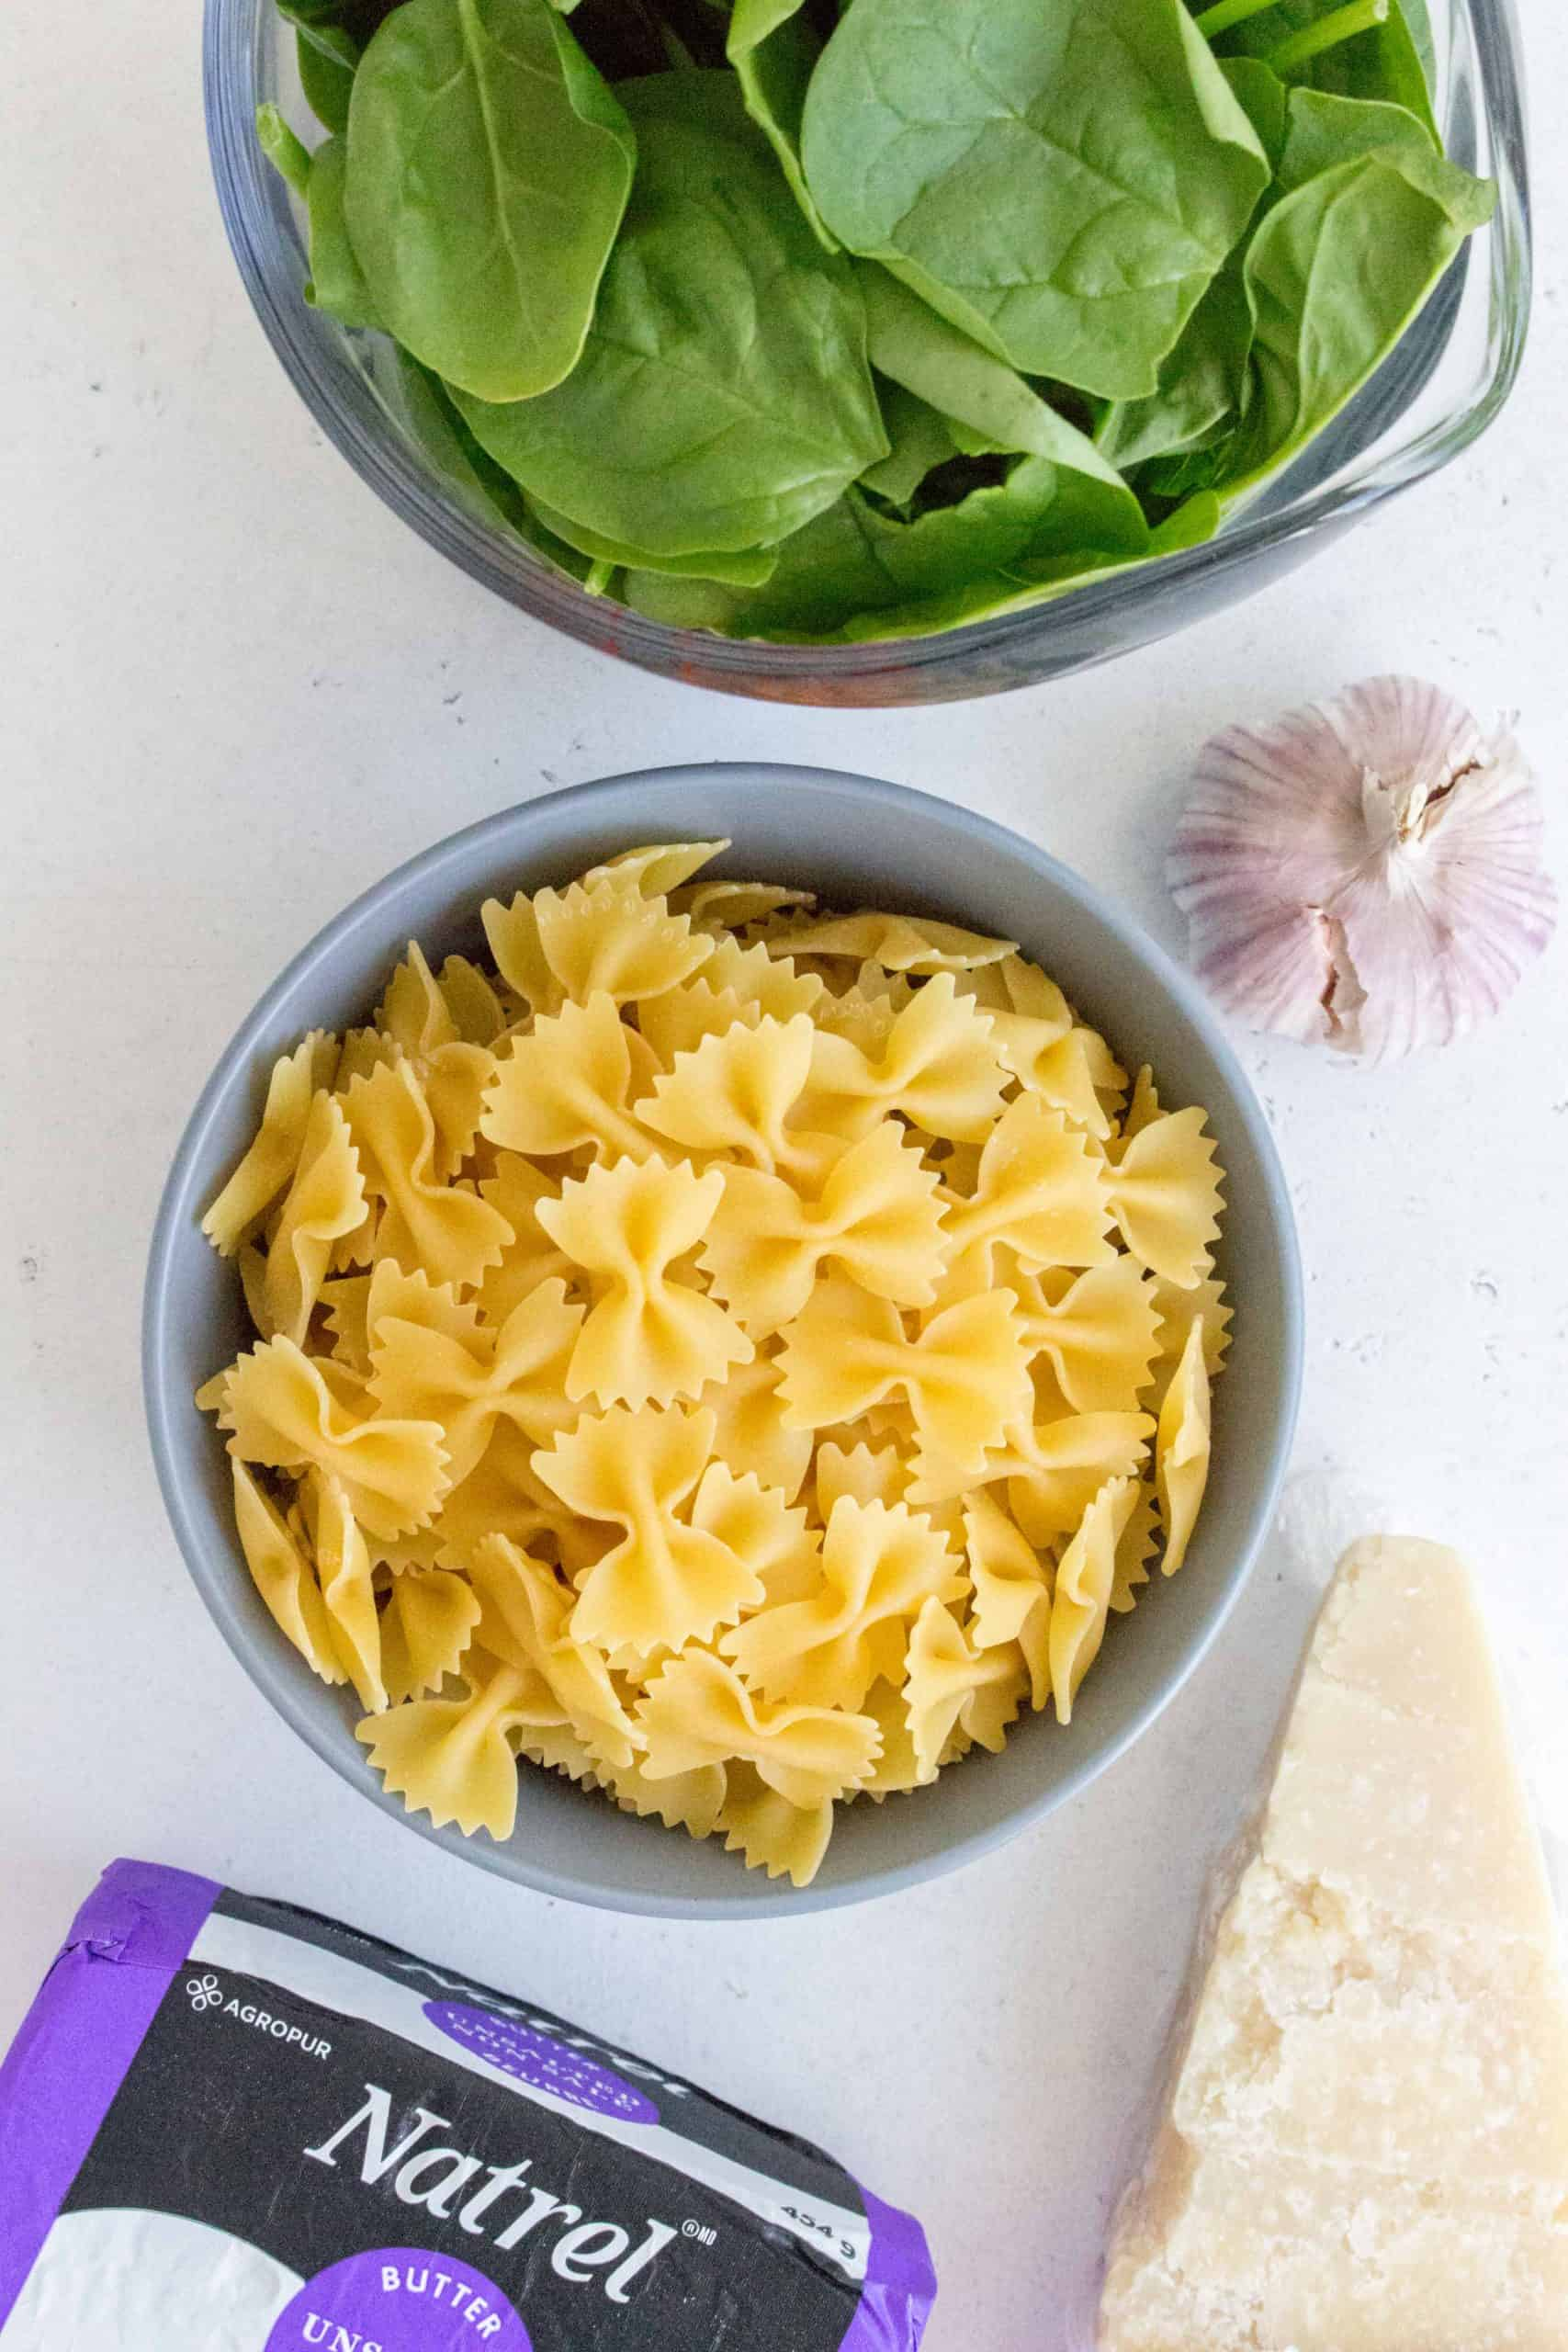 ingredients for butter pasta: bow tie pasta in a blue bowl, butter, spinach, parmesan, and garlic